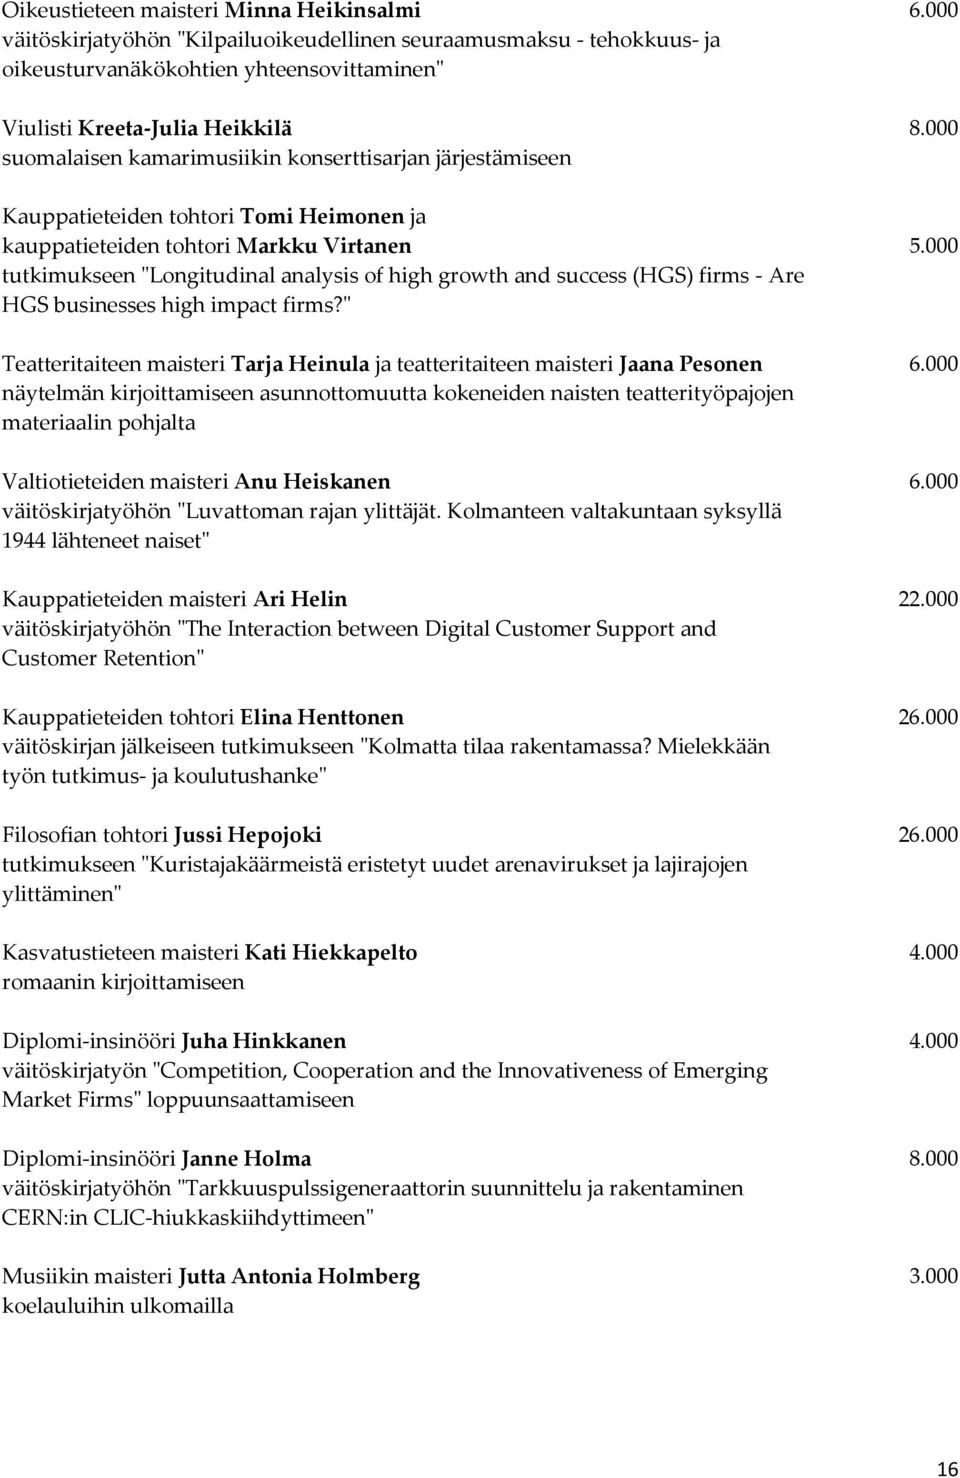 "000 tutkimukseen ""Longitudinal analysis of high growth and success (HGS) firms - Are HGS businesses high impact firms?"